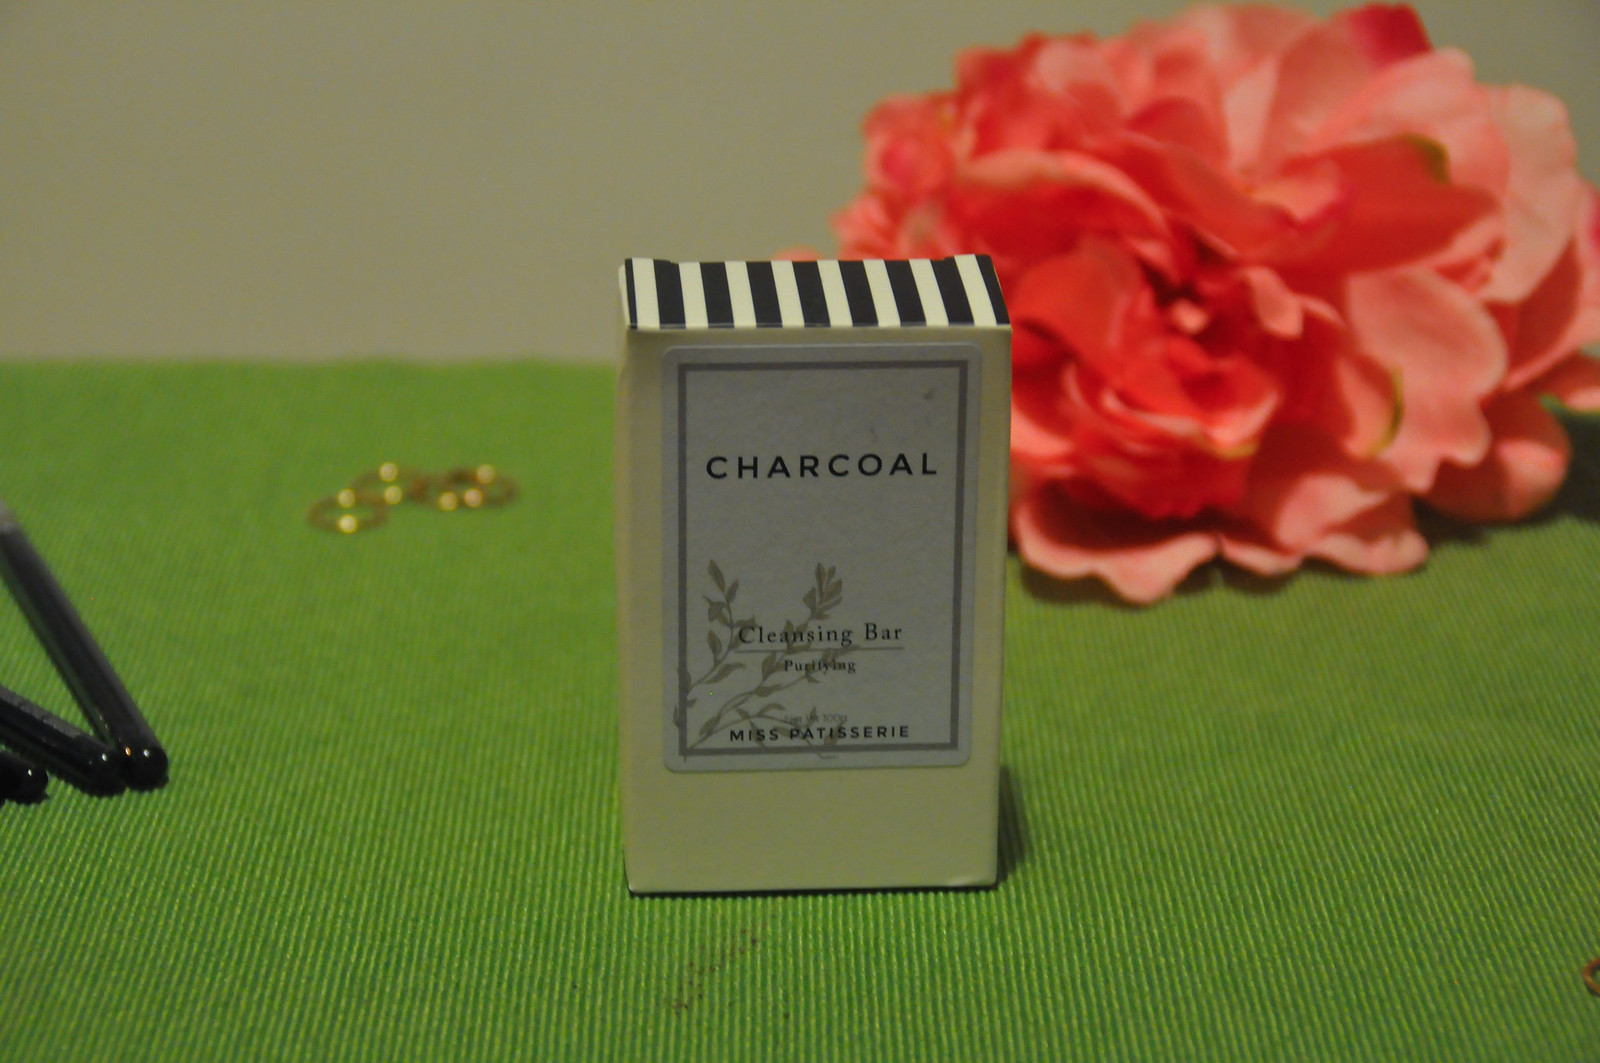 Miss Patisserie Charcoal Cleansing Bar Review